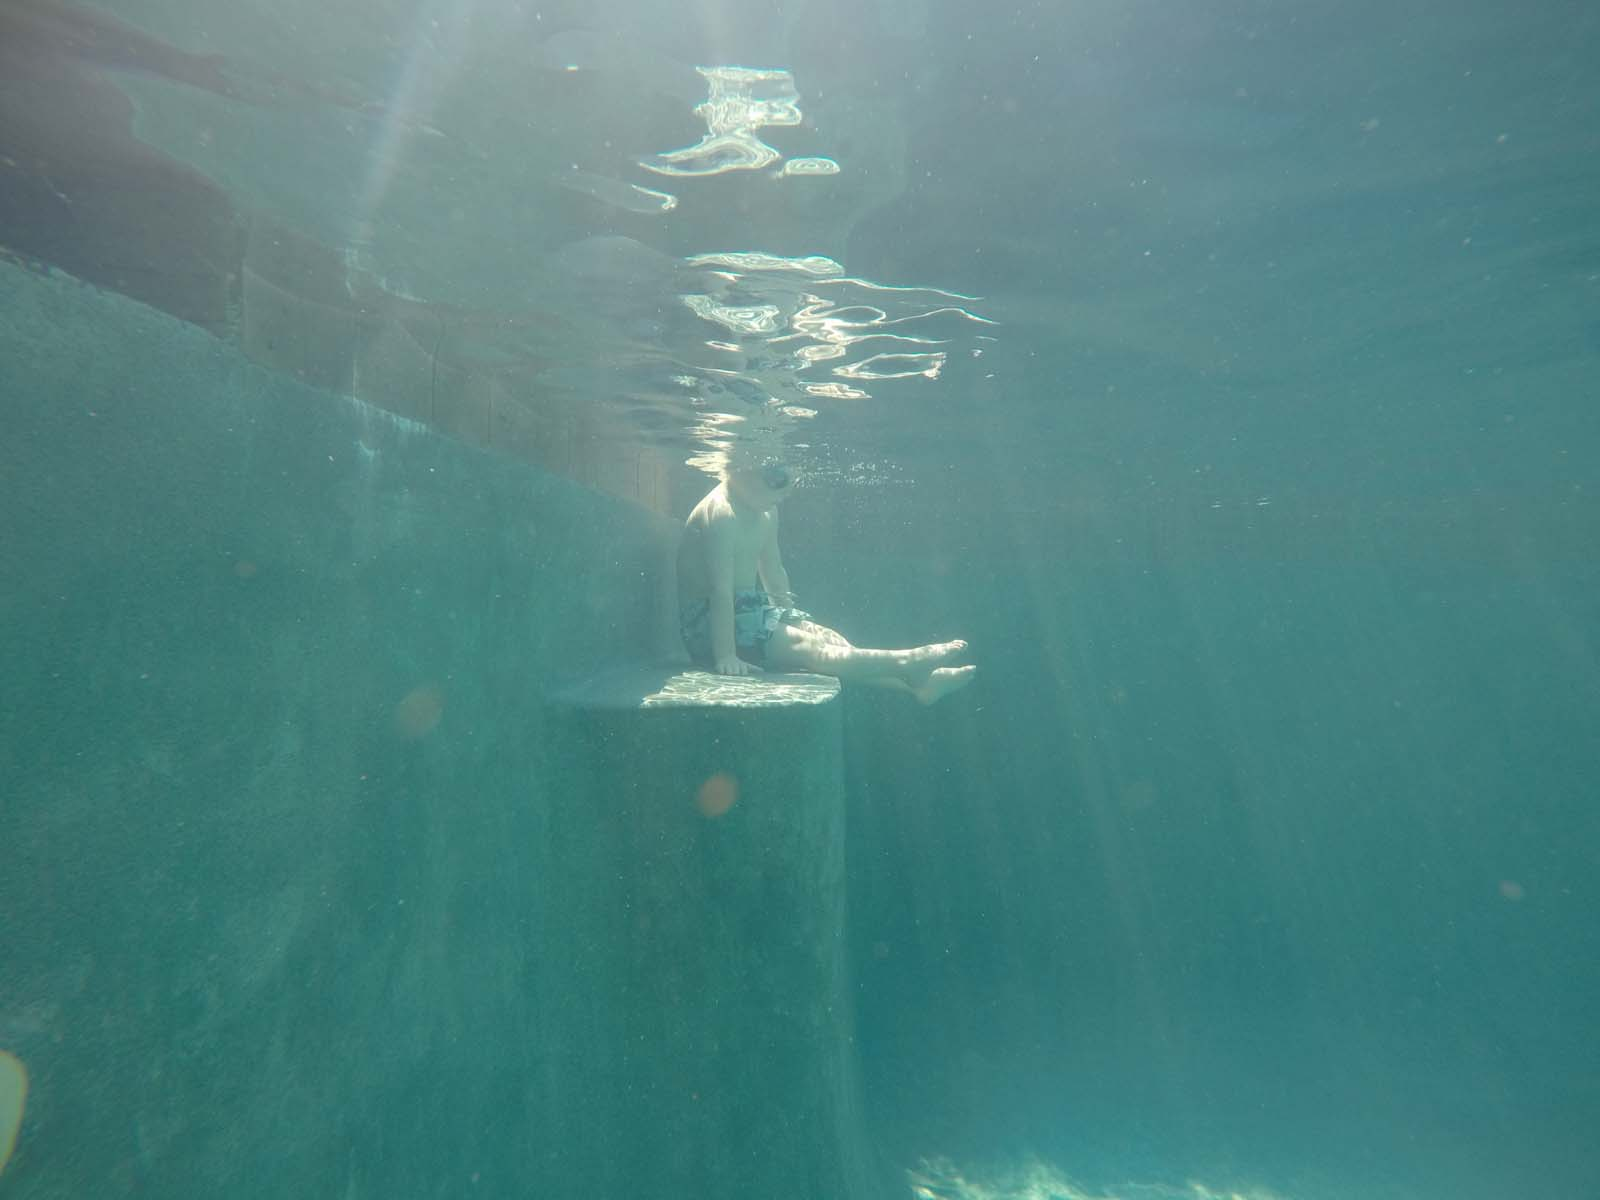 unedited (SOOC) image for boy underwater